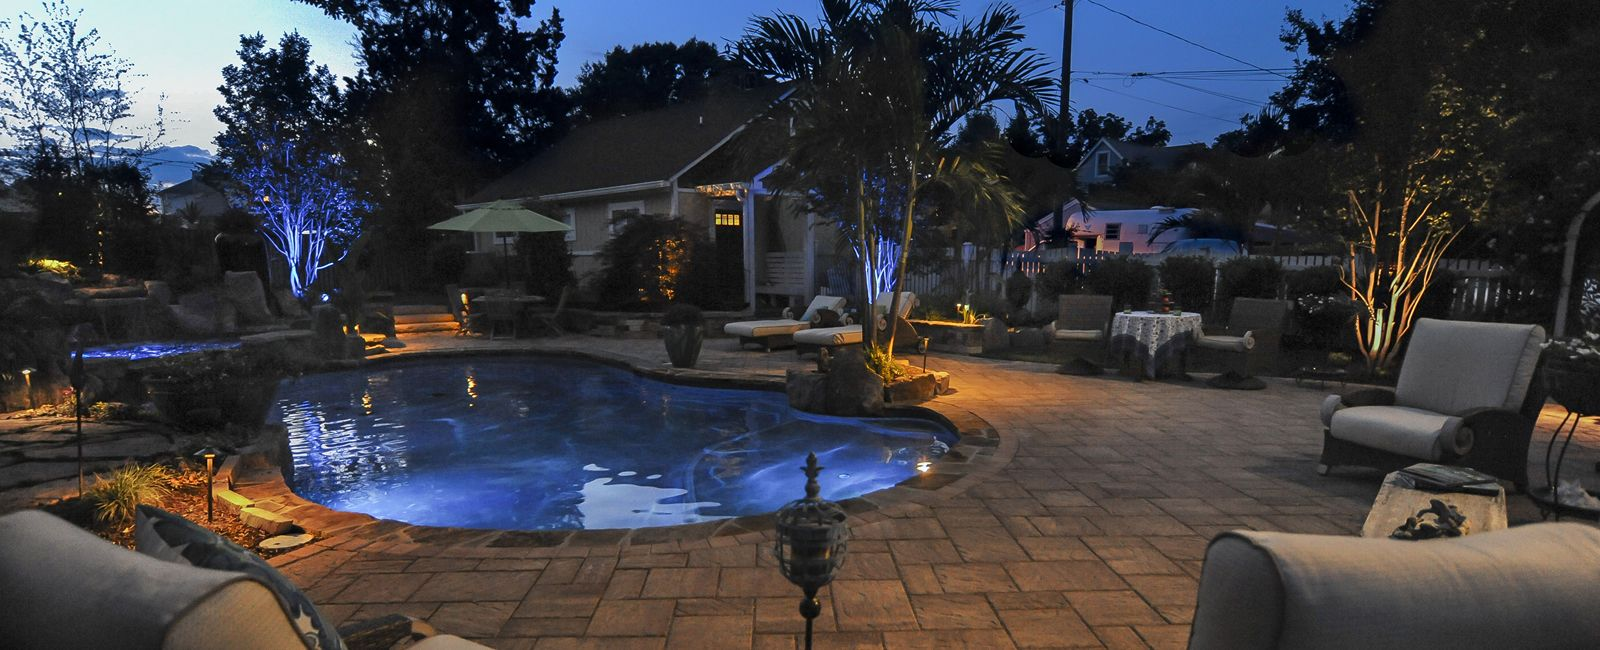 Stewart lawn and landscape the ultimate landscape for Pool design maryland